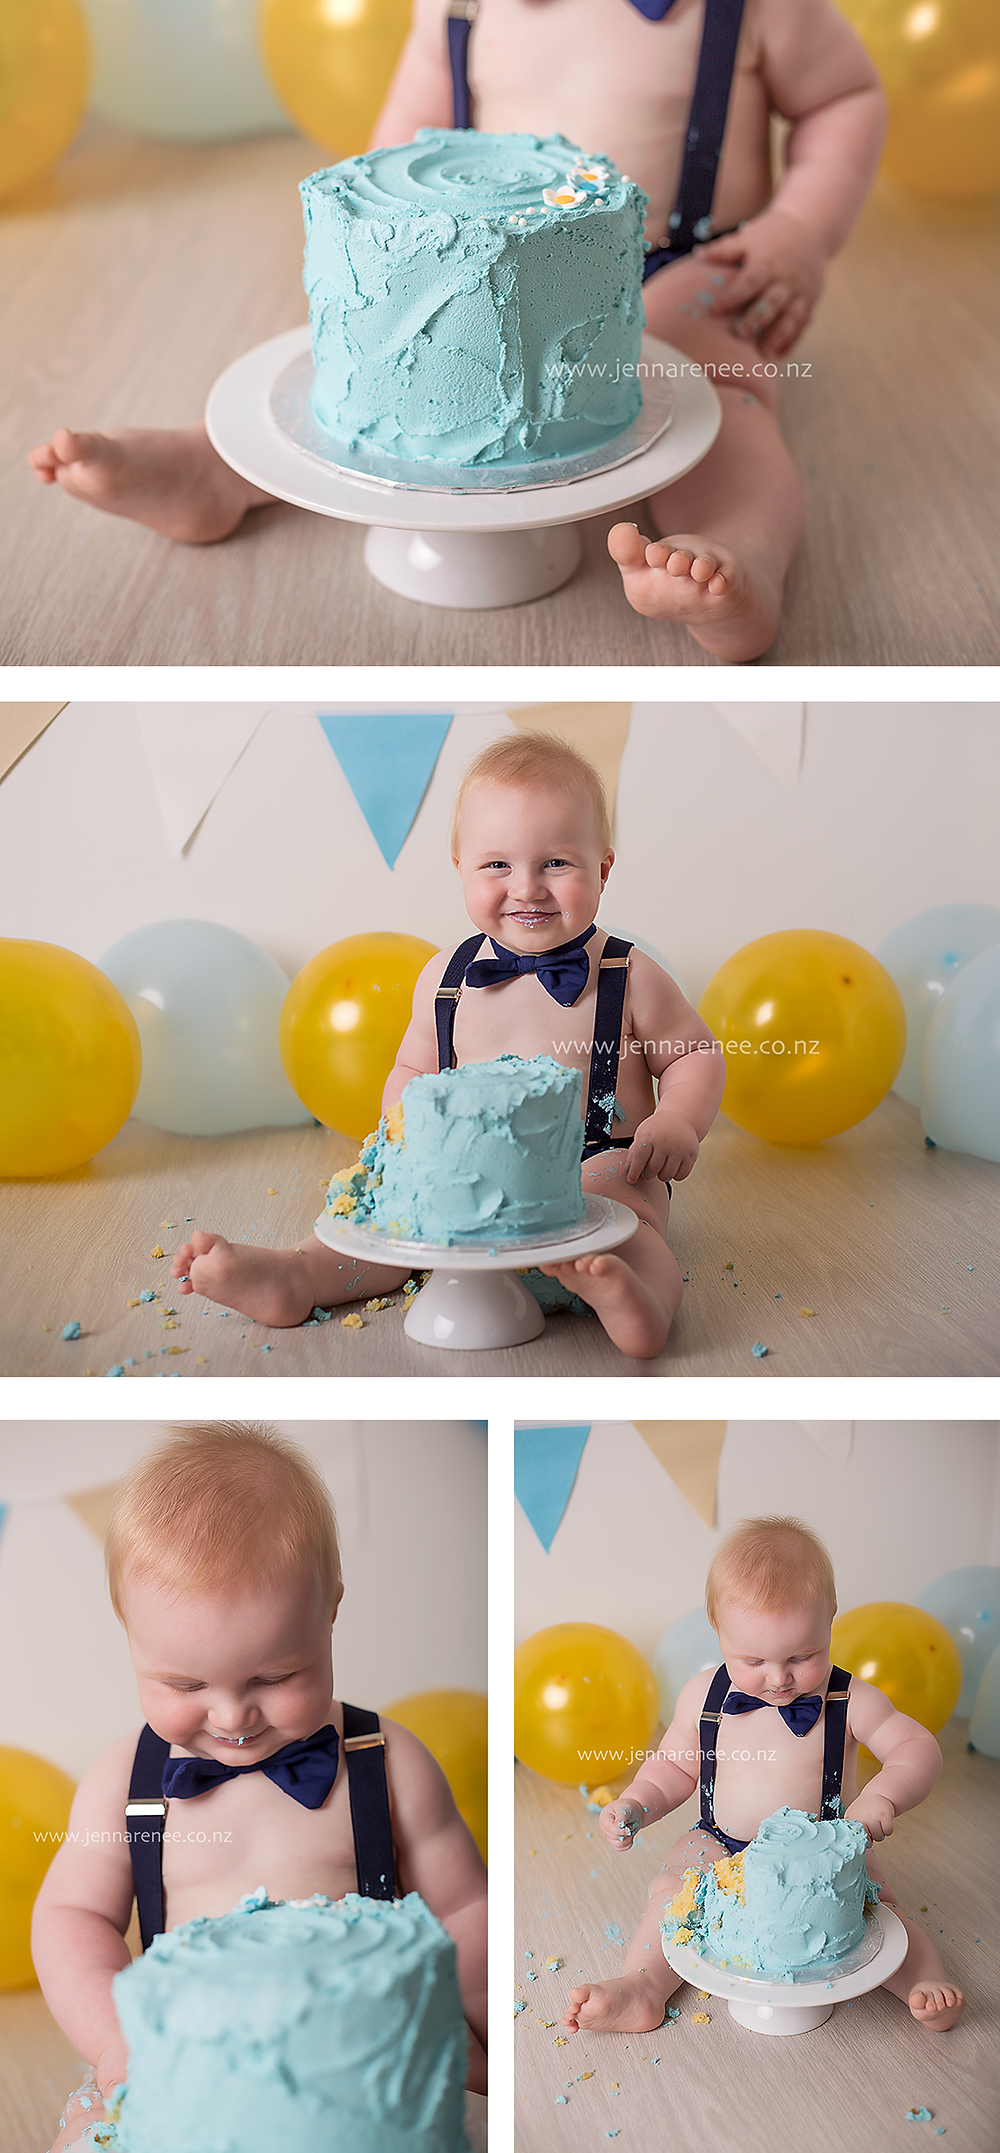 Auckland cake smash photography